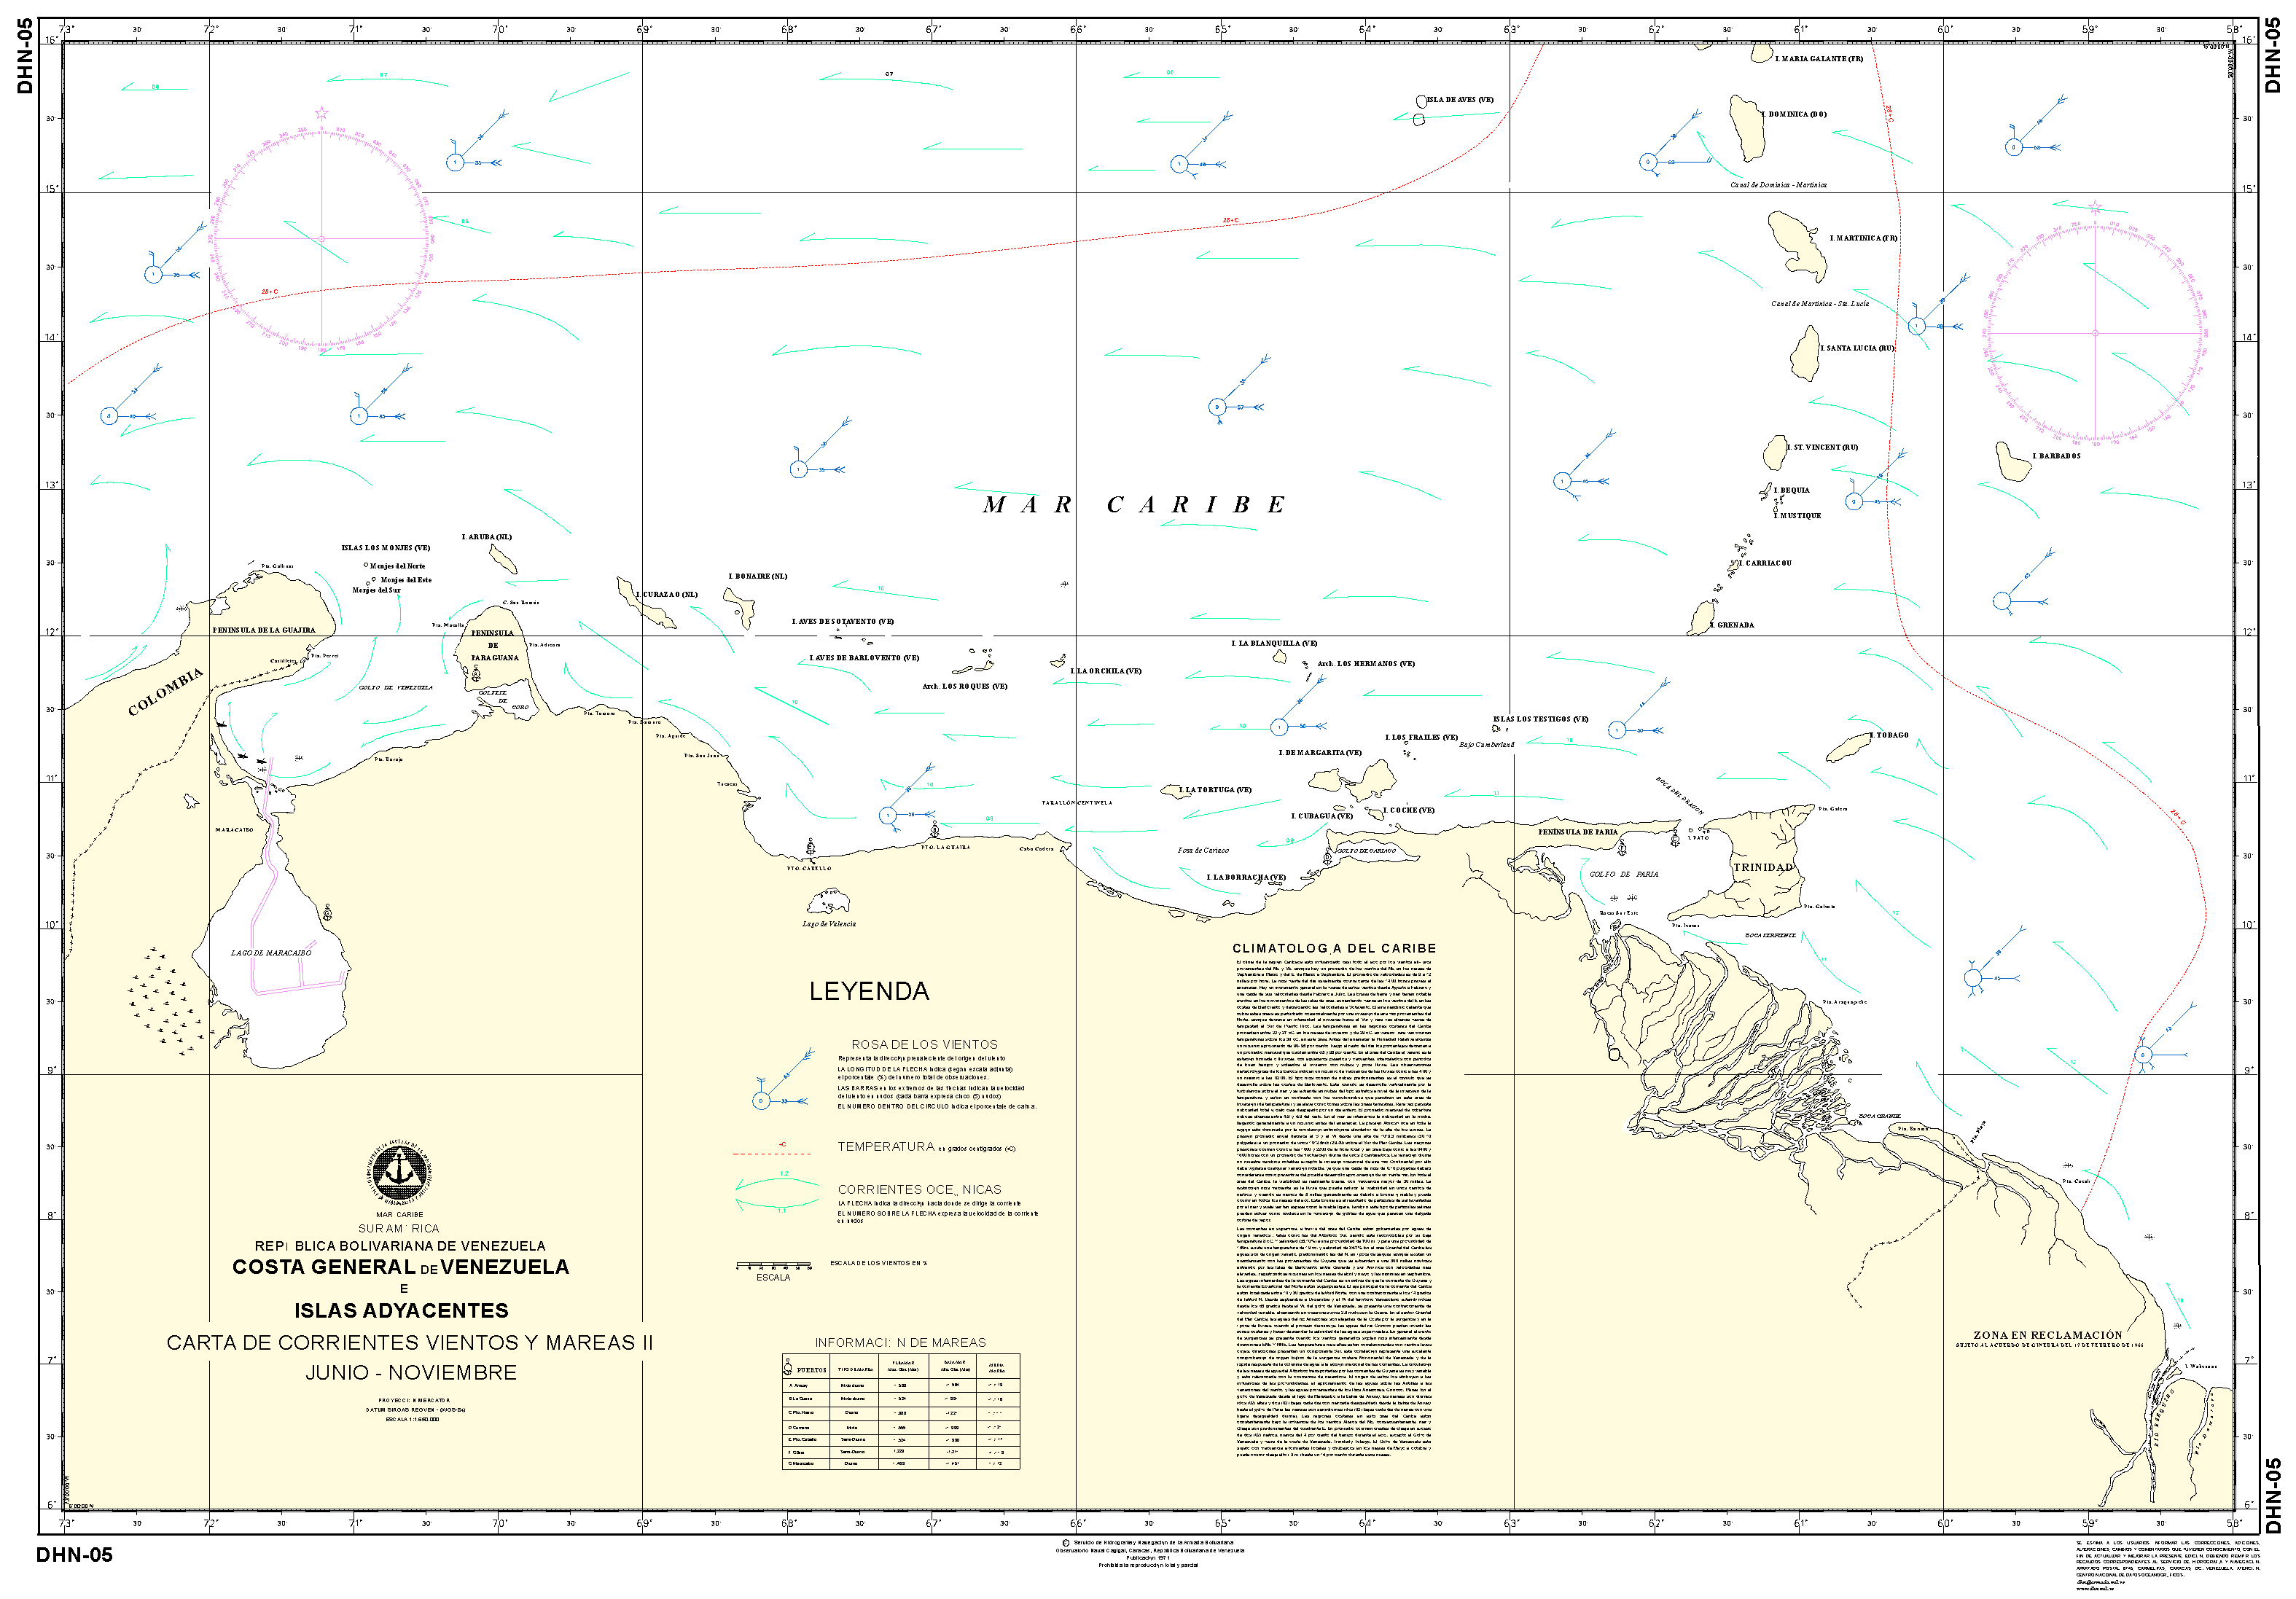 Nautical Free: Online free nautical charts and publications